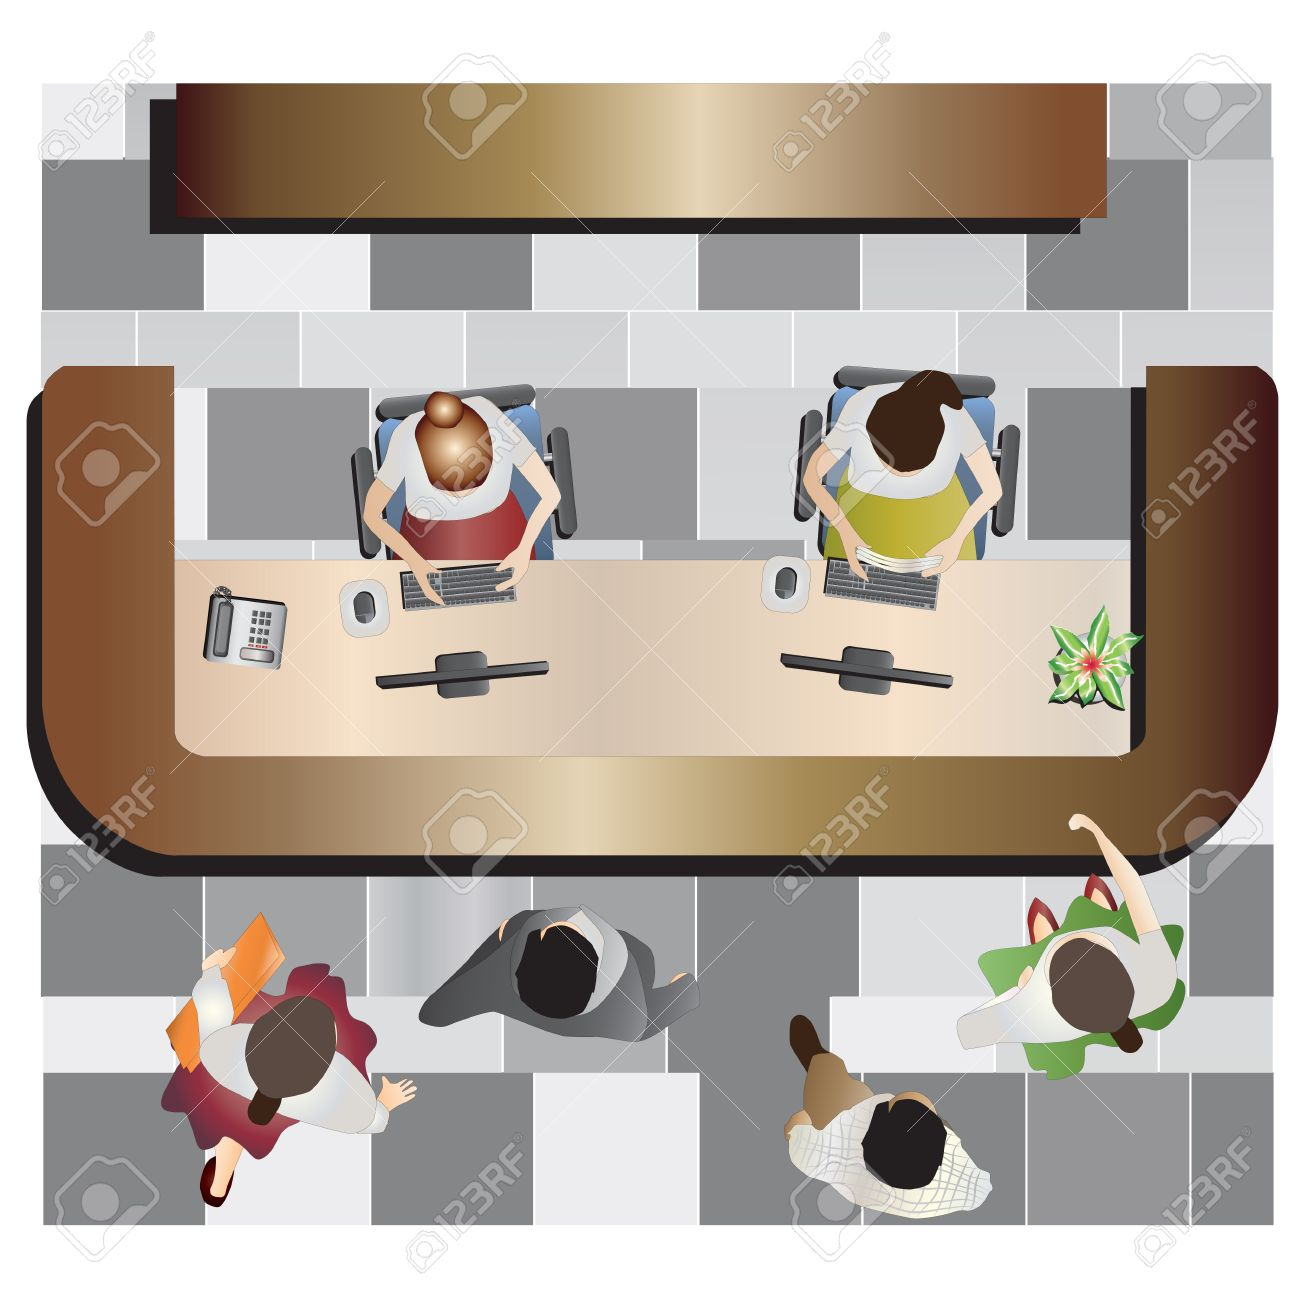 Office furniture top view - Office Furniture Reception Top View Set 13 For Interior Vector Illustration Stock Vector